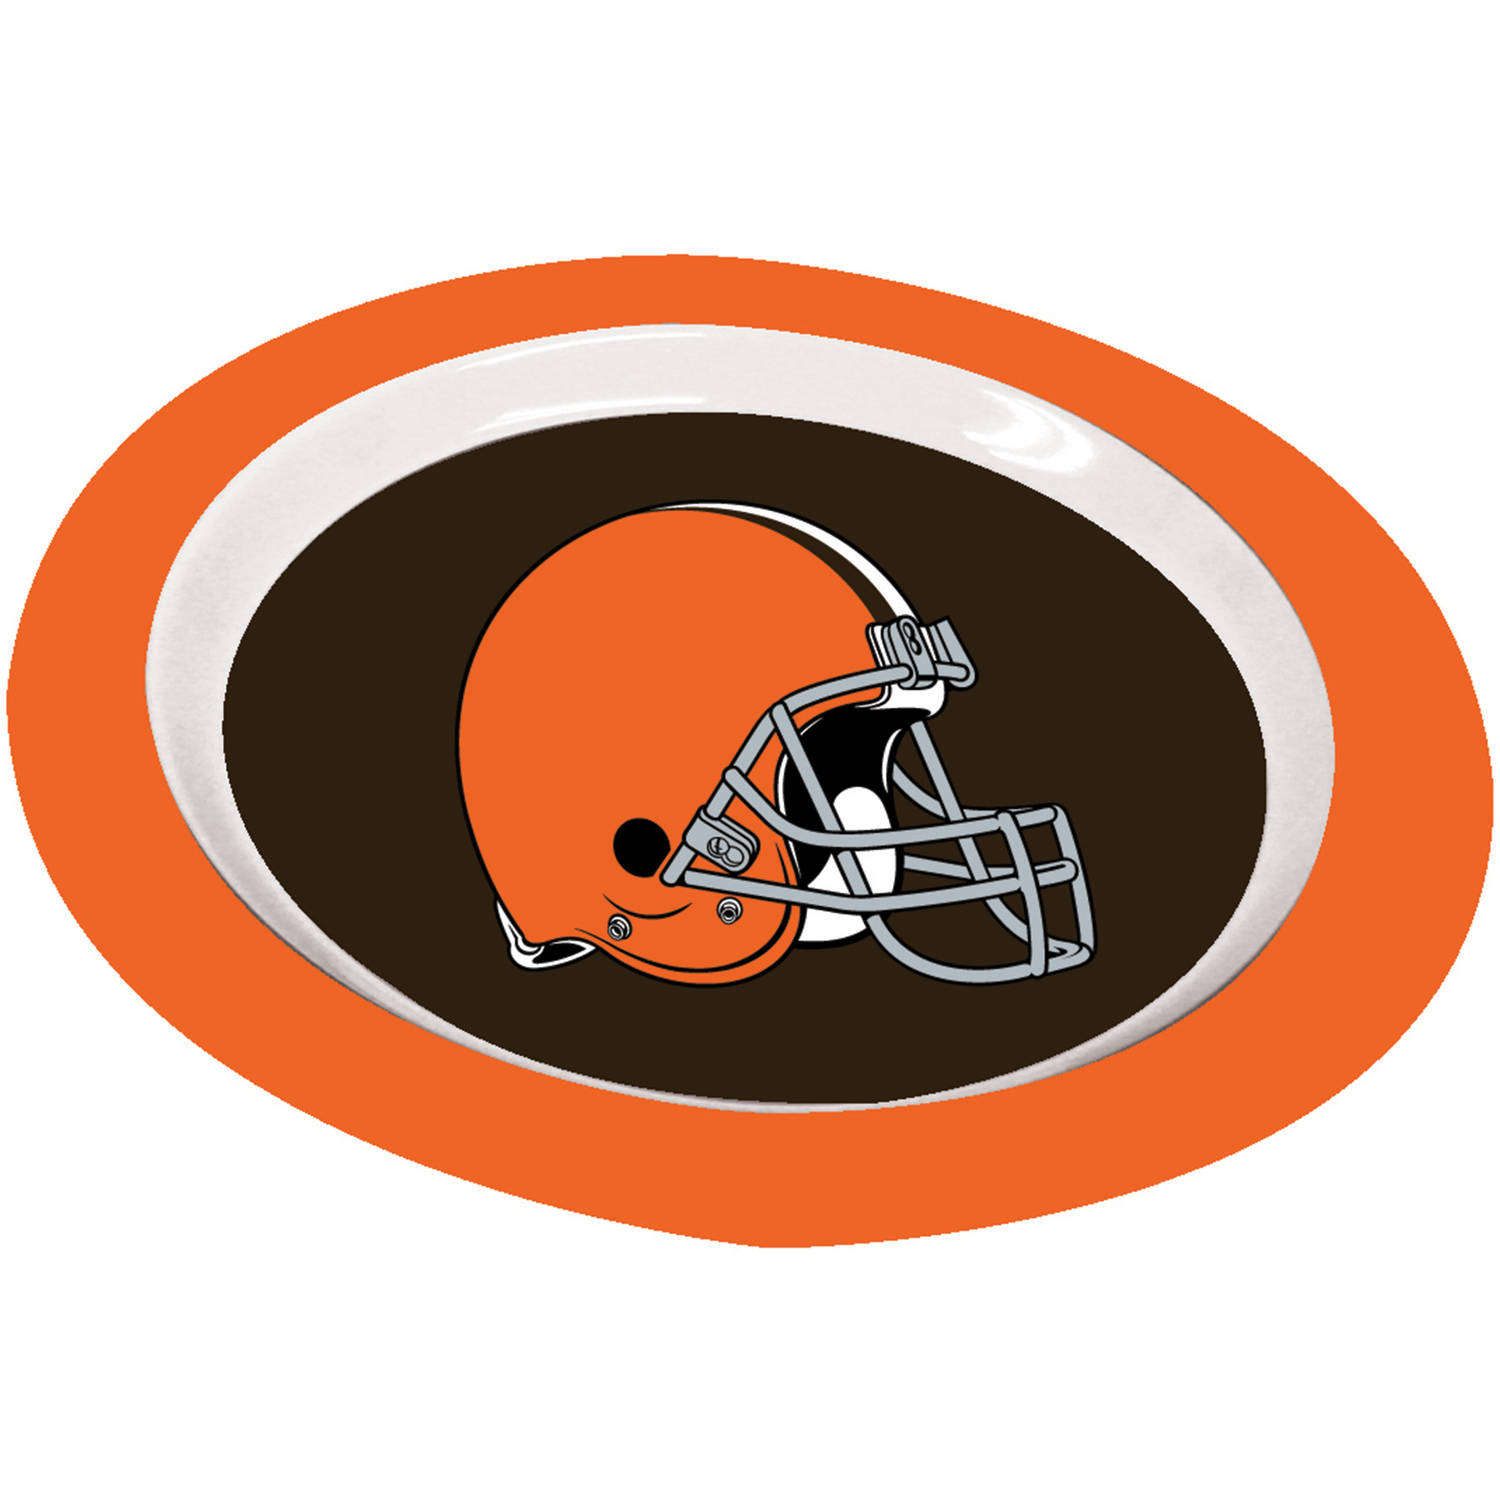 "NFL Browns 10"" Plate"